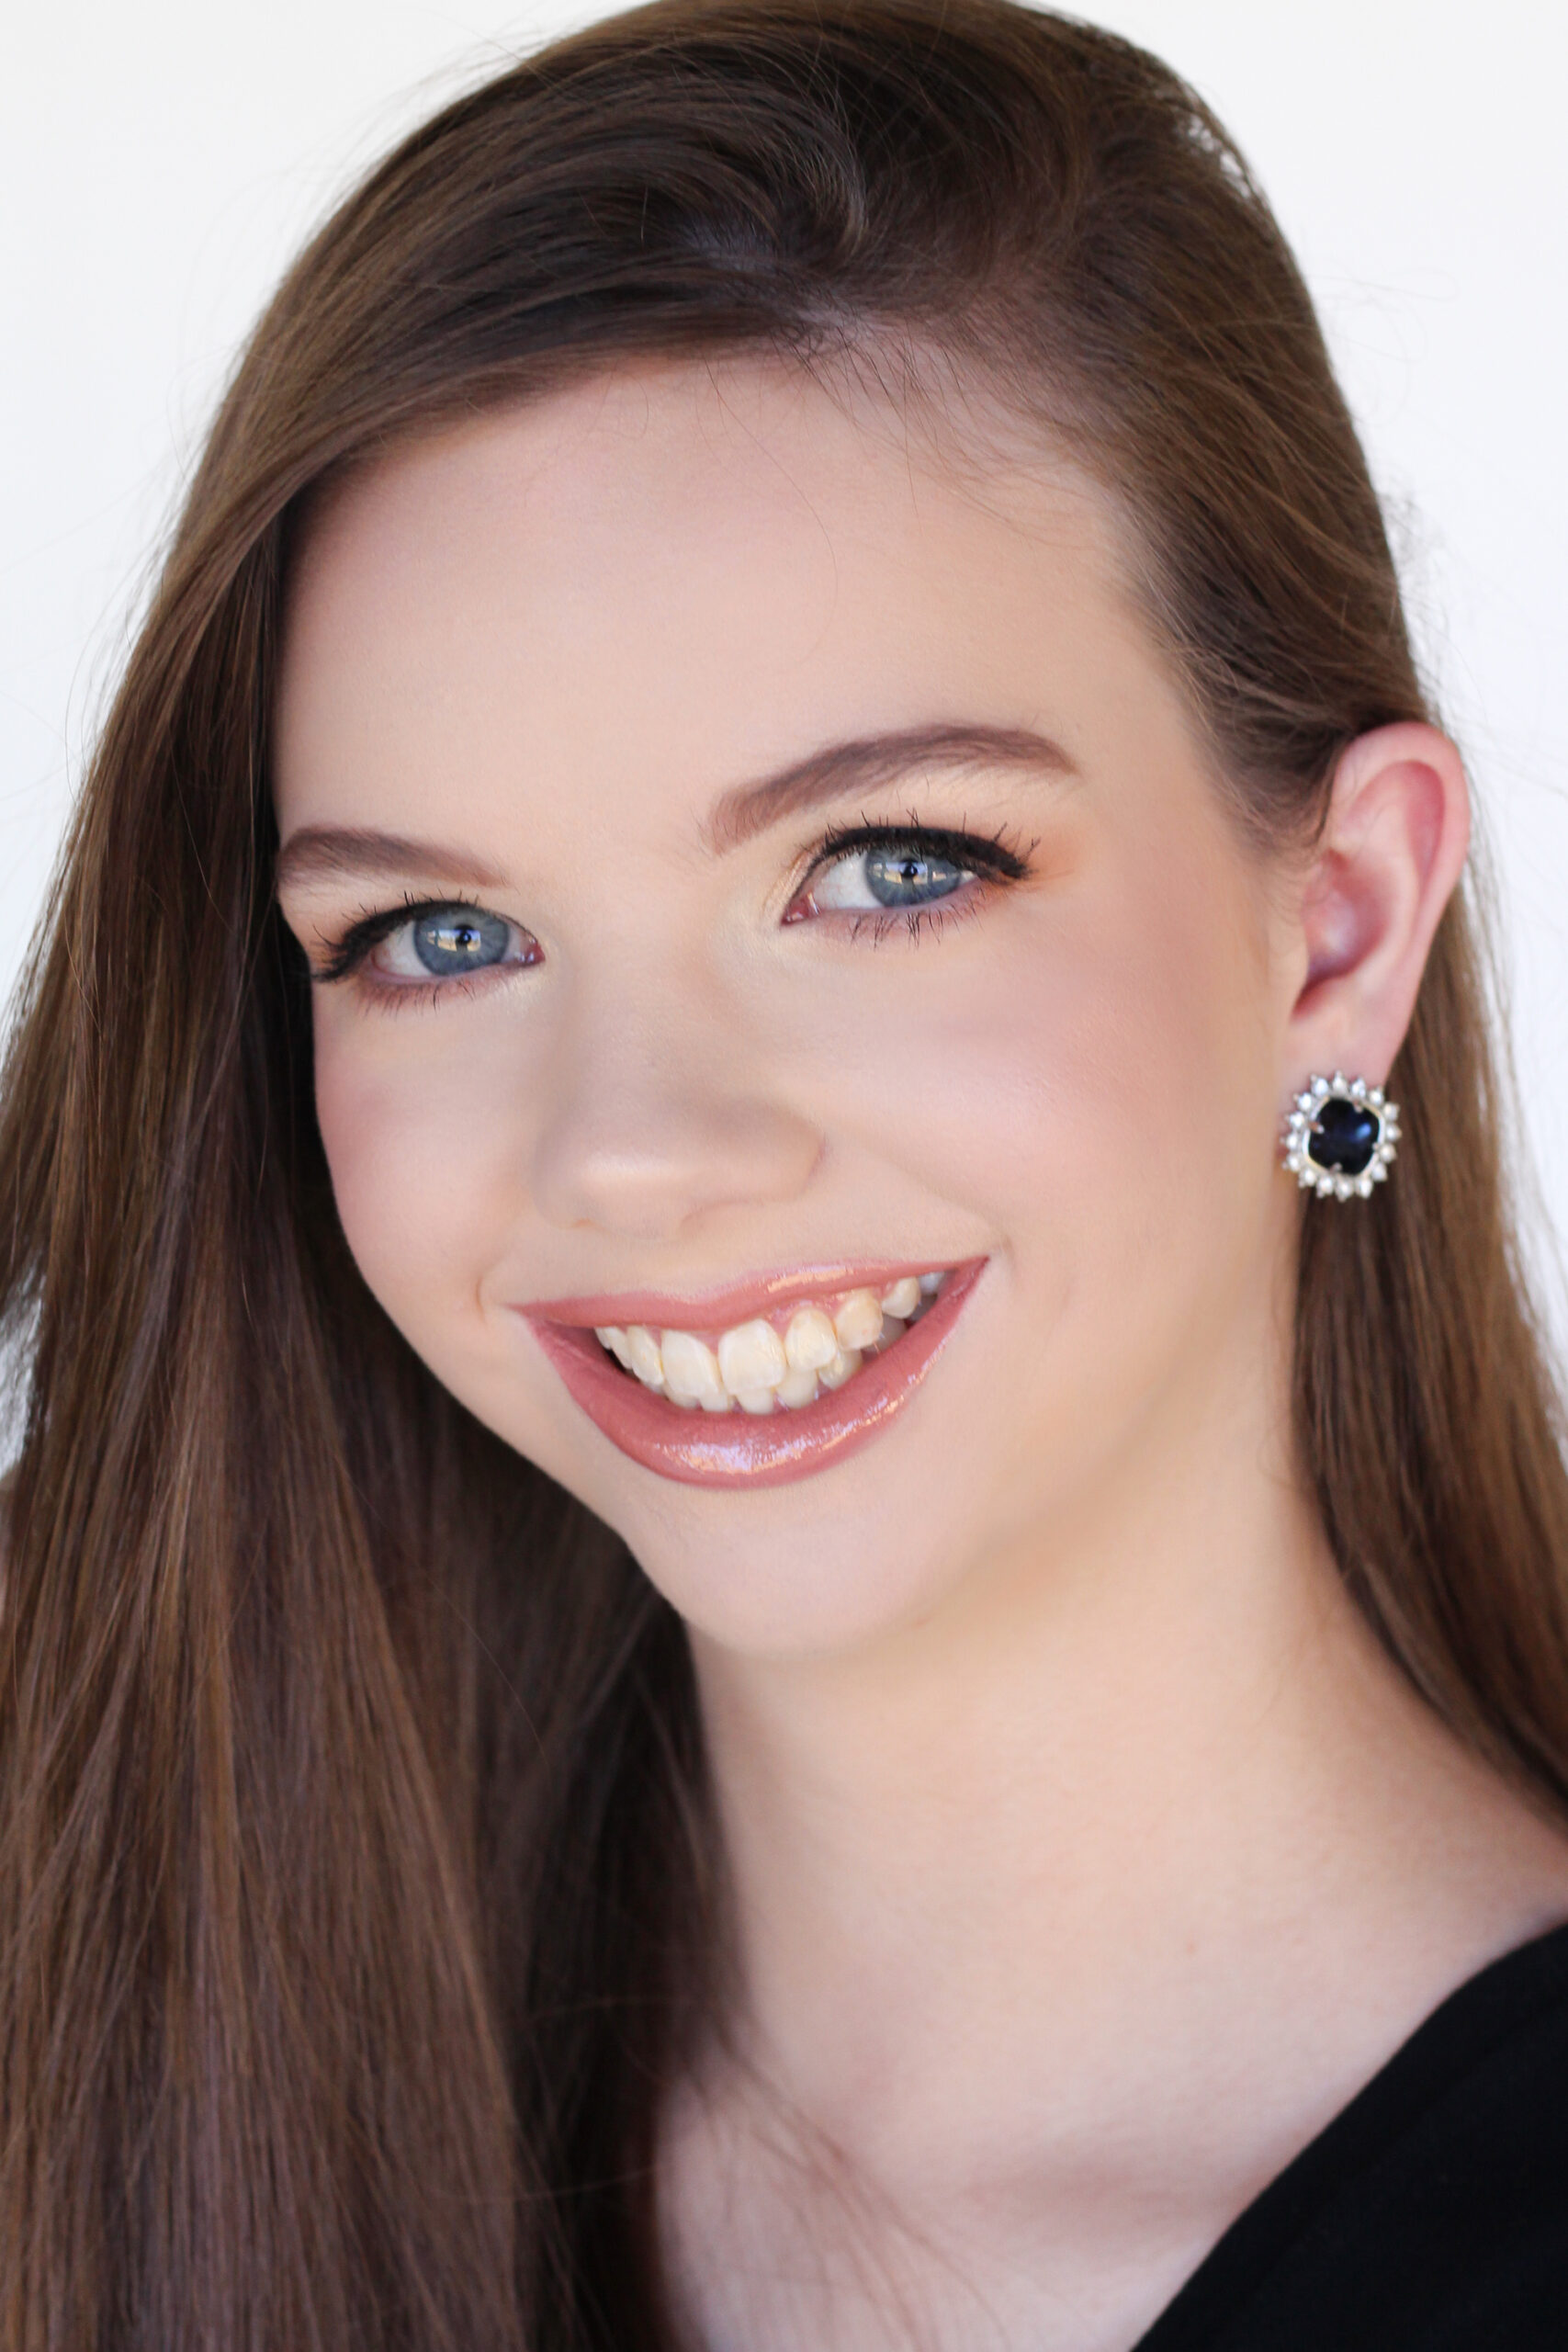 Sydney Scheller MISS GRAND CANYON TEEN USA